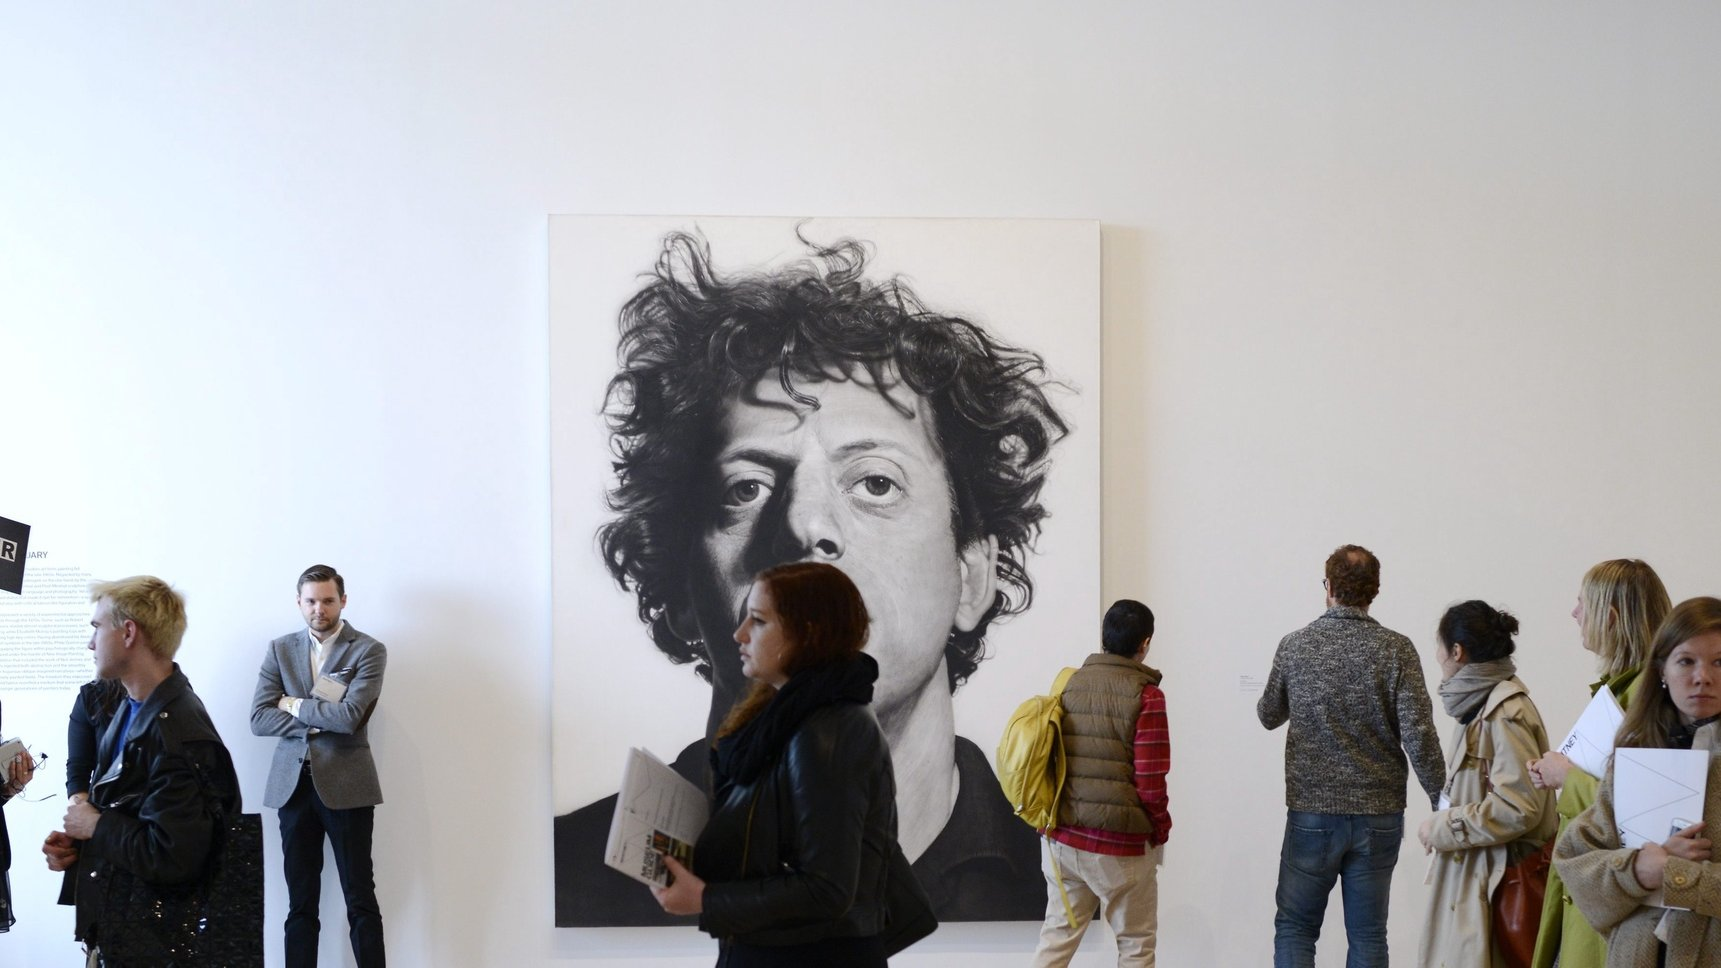 epa04717871 People look over the galleries and art, including a painting by artist Chuck Close, at the new Whitney Museum of American Art during a press preview in New York, New York, USA, 23 April 2015. The Whitney's new building, which was designed by Italian architect Renzo Piano, opens to the public on 01 May 2015.  EPA/JUSTIN LANE